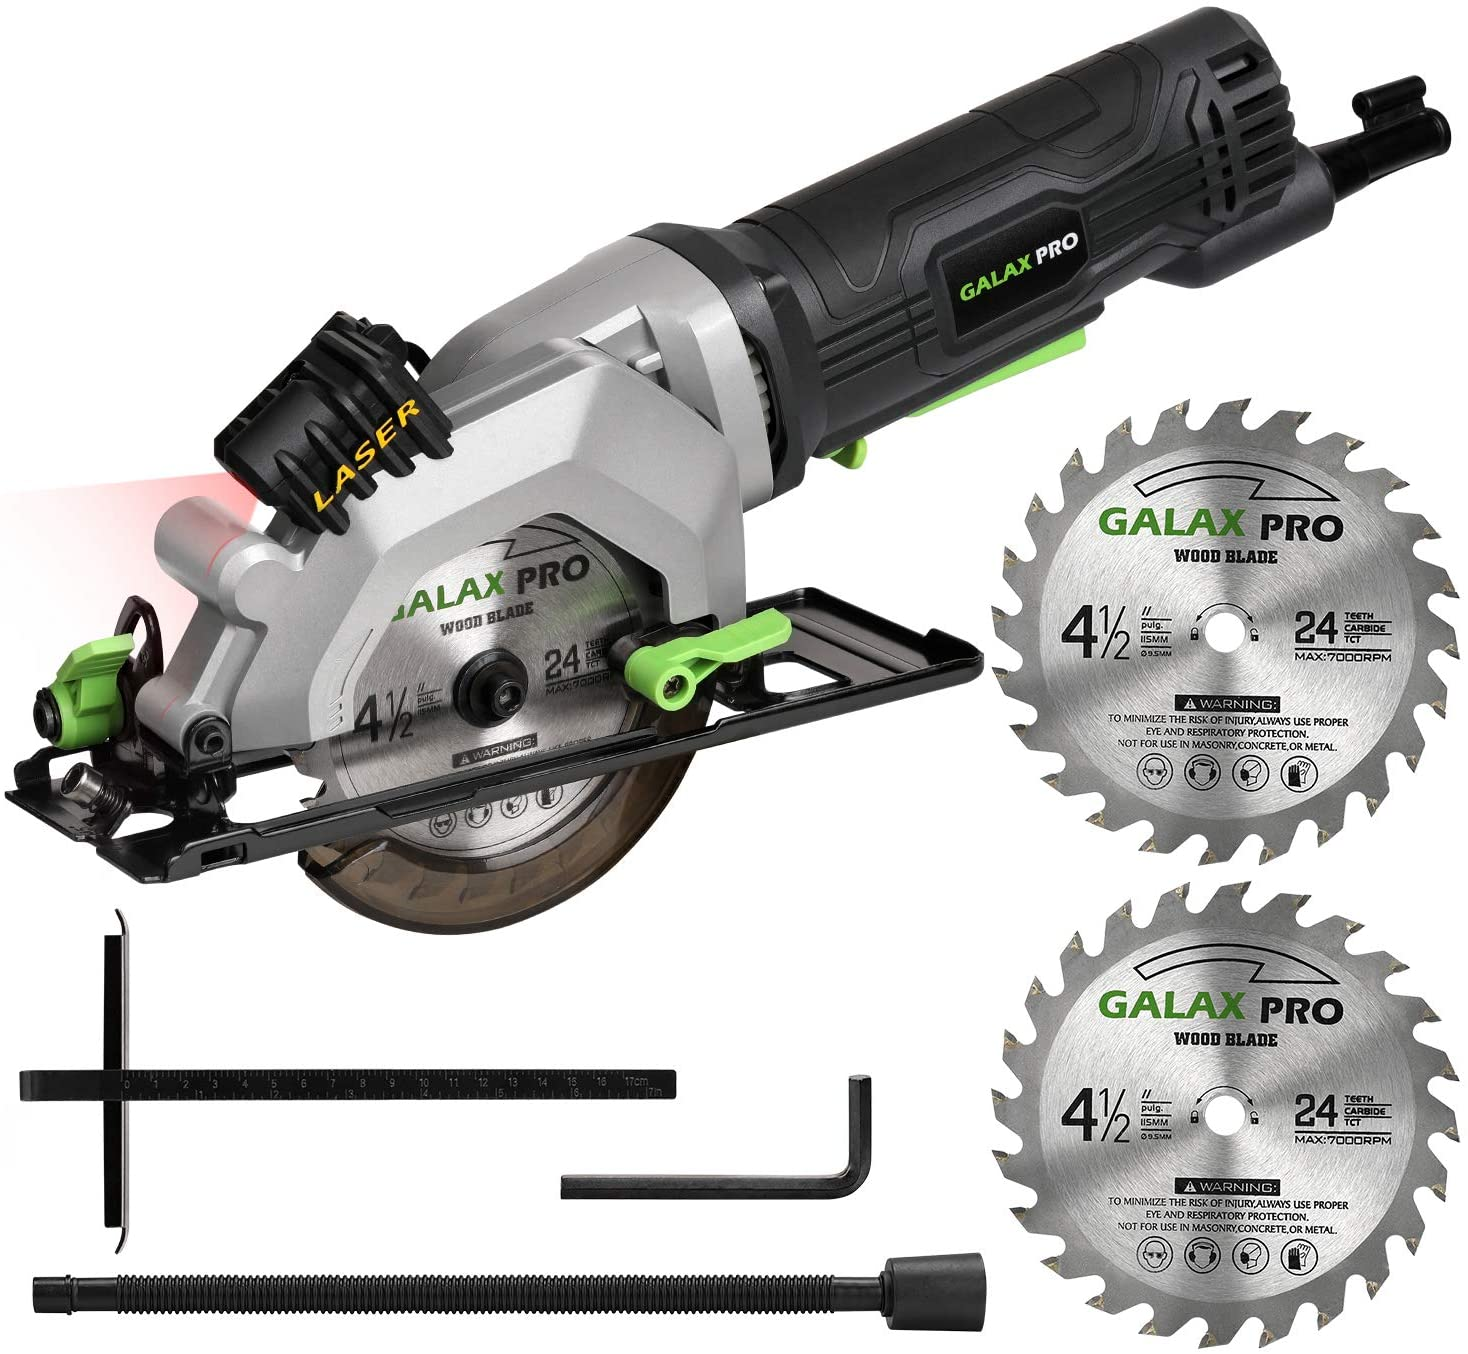 """GALAX PRO 4Amp 3500RPM Circular Saw with Laser Guide, Max. Cutting Depth1-11/16""""(90°), 1-1/8""""(45°)Compact Saw with 4-1/2"""" 24T TCT Blade, Vacuum Adapter, Blade Wrench, and Rip Guide"""